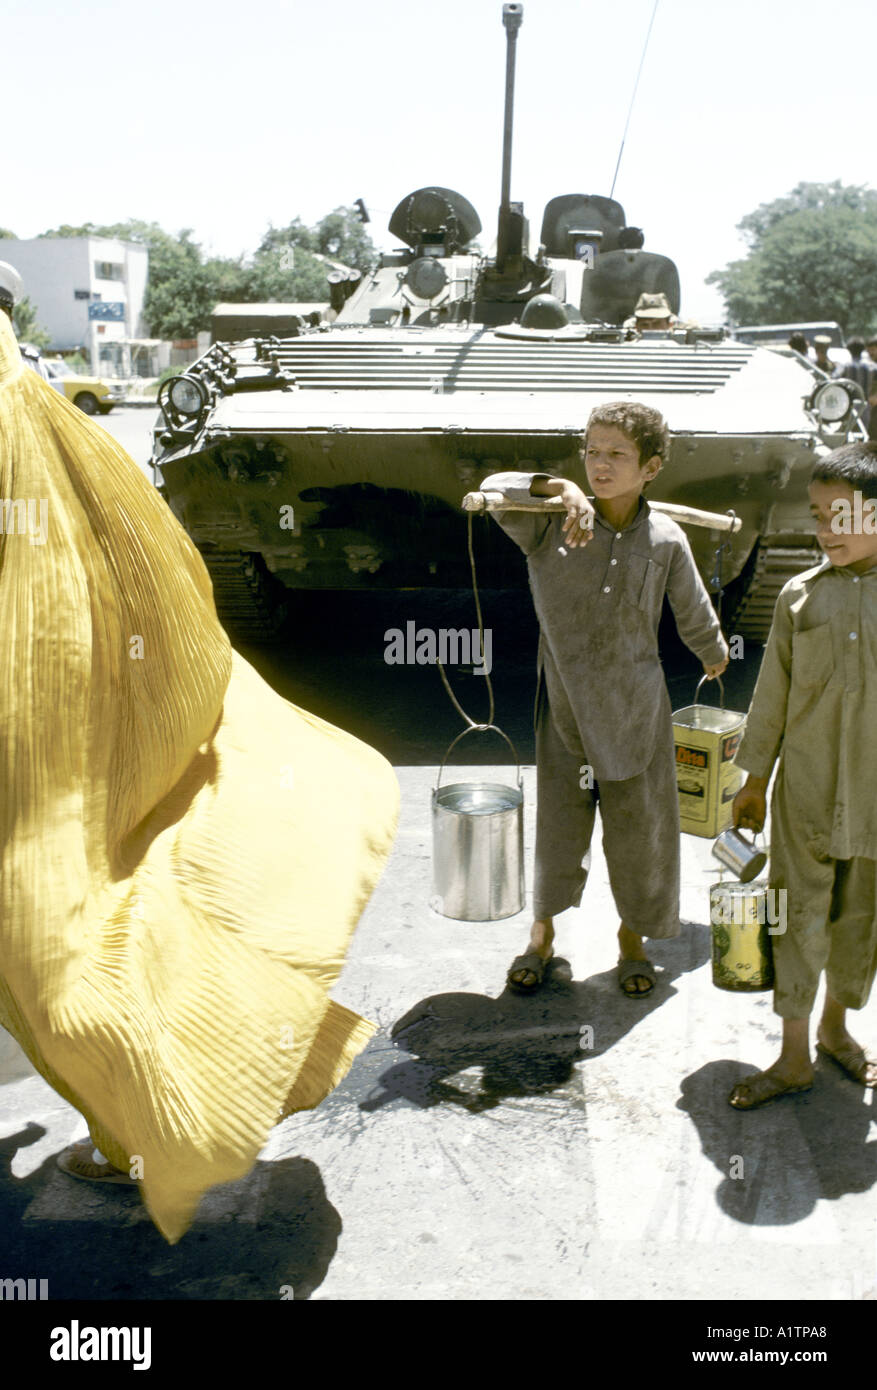 Soviet Afghanistan war - Page 6 Child-with-containers-of-water-in-front-of-soviet-tank-kabul-afghanistan-A1TPA8